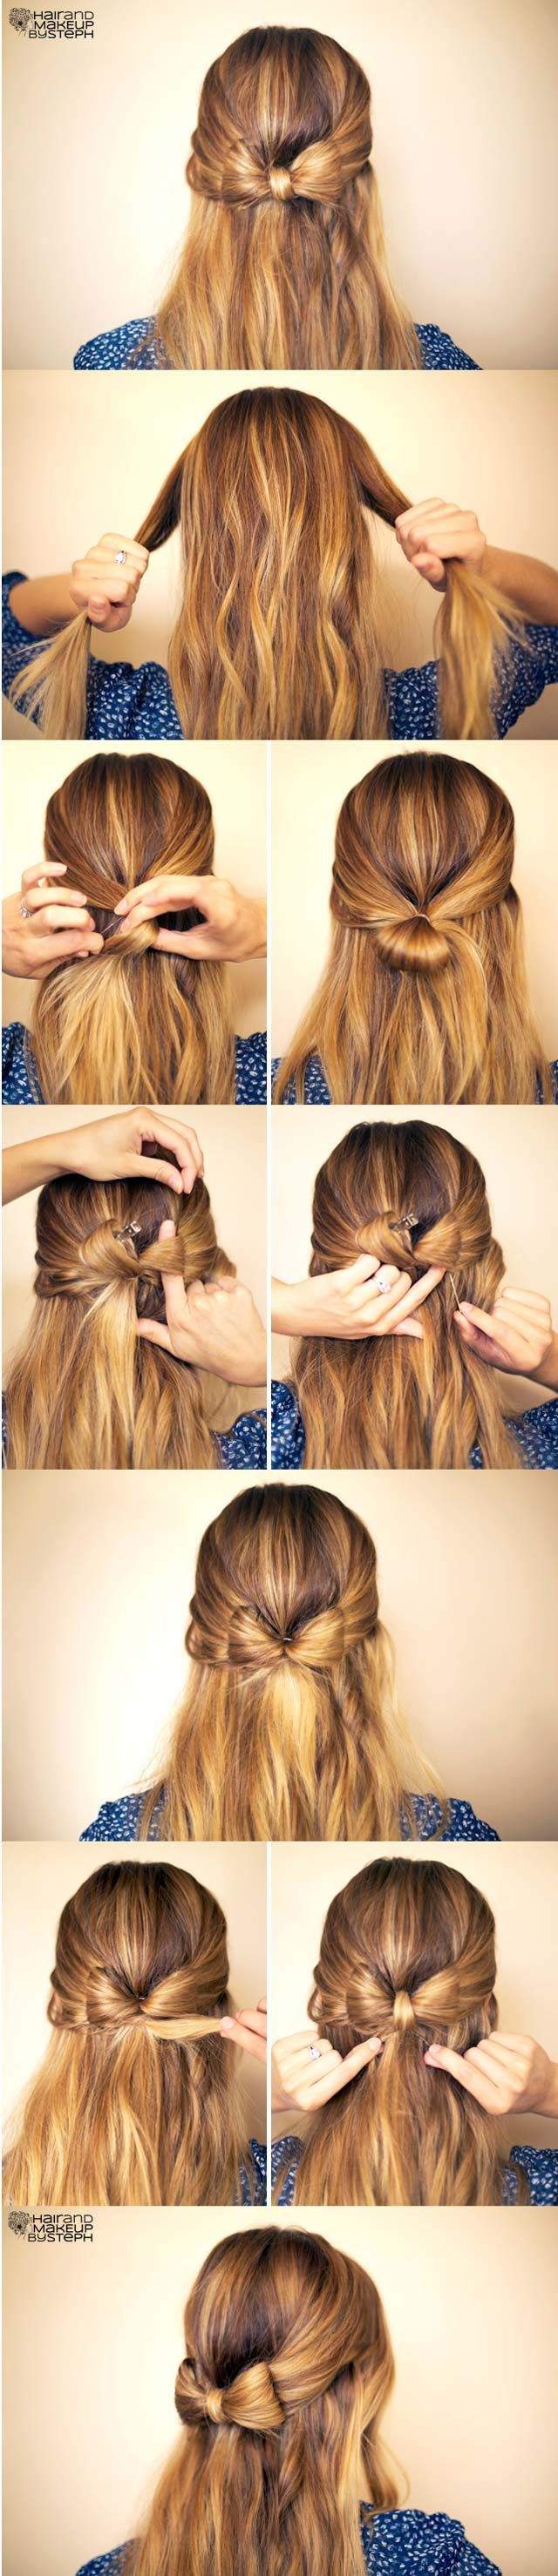 15 Super Easy Hairstyles With Tutorials - Pretty Designs